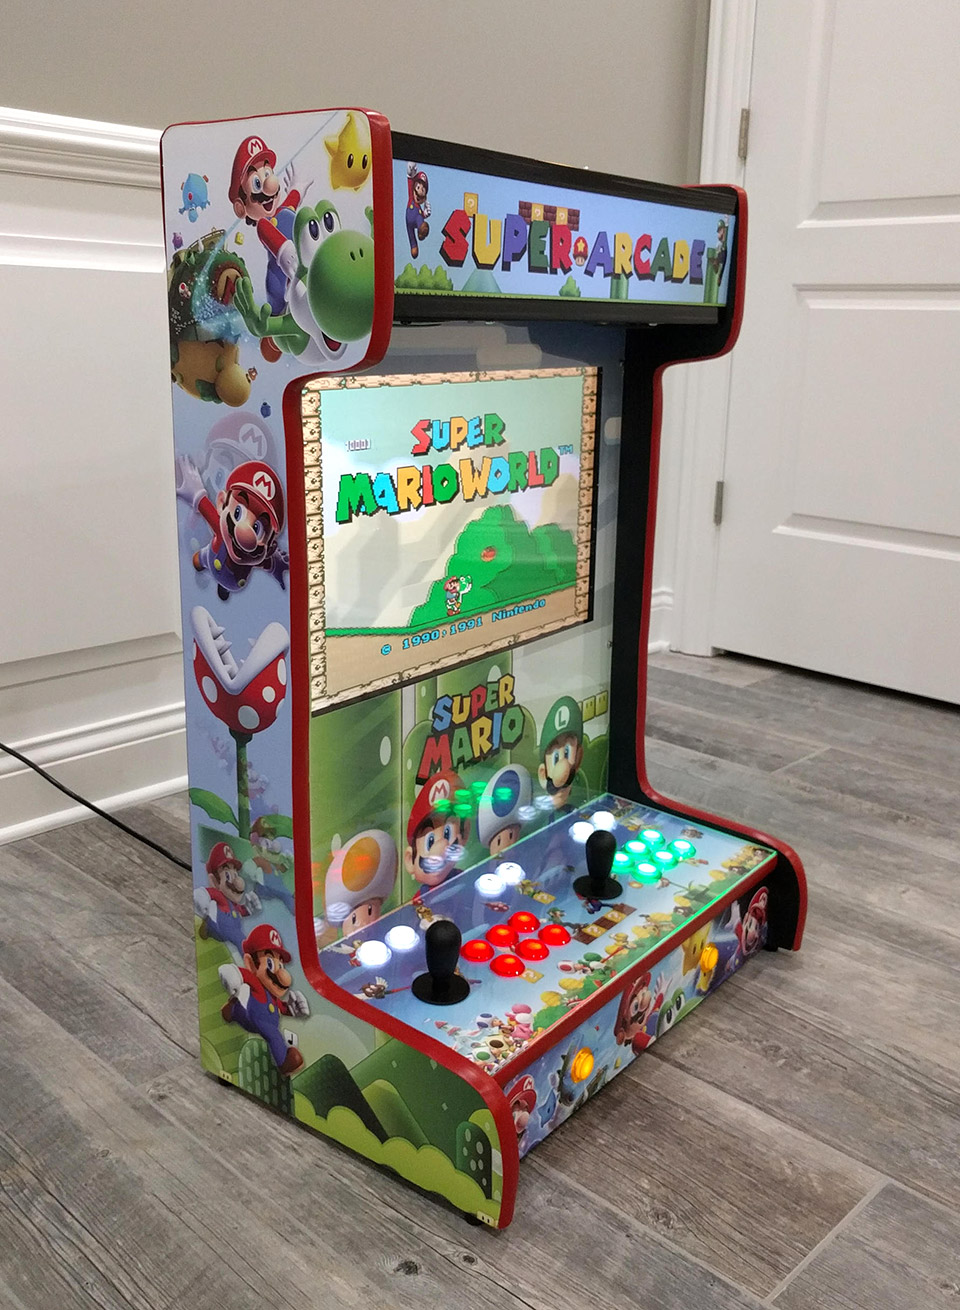 These Wall-Mounted Arcade Cabinets Save Quarters and Space - Technabob